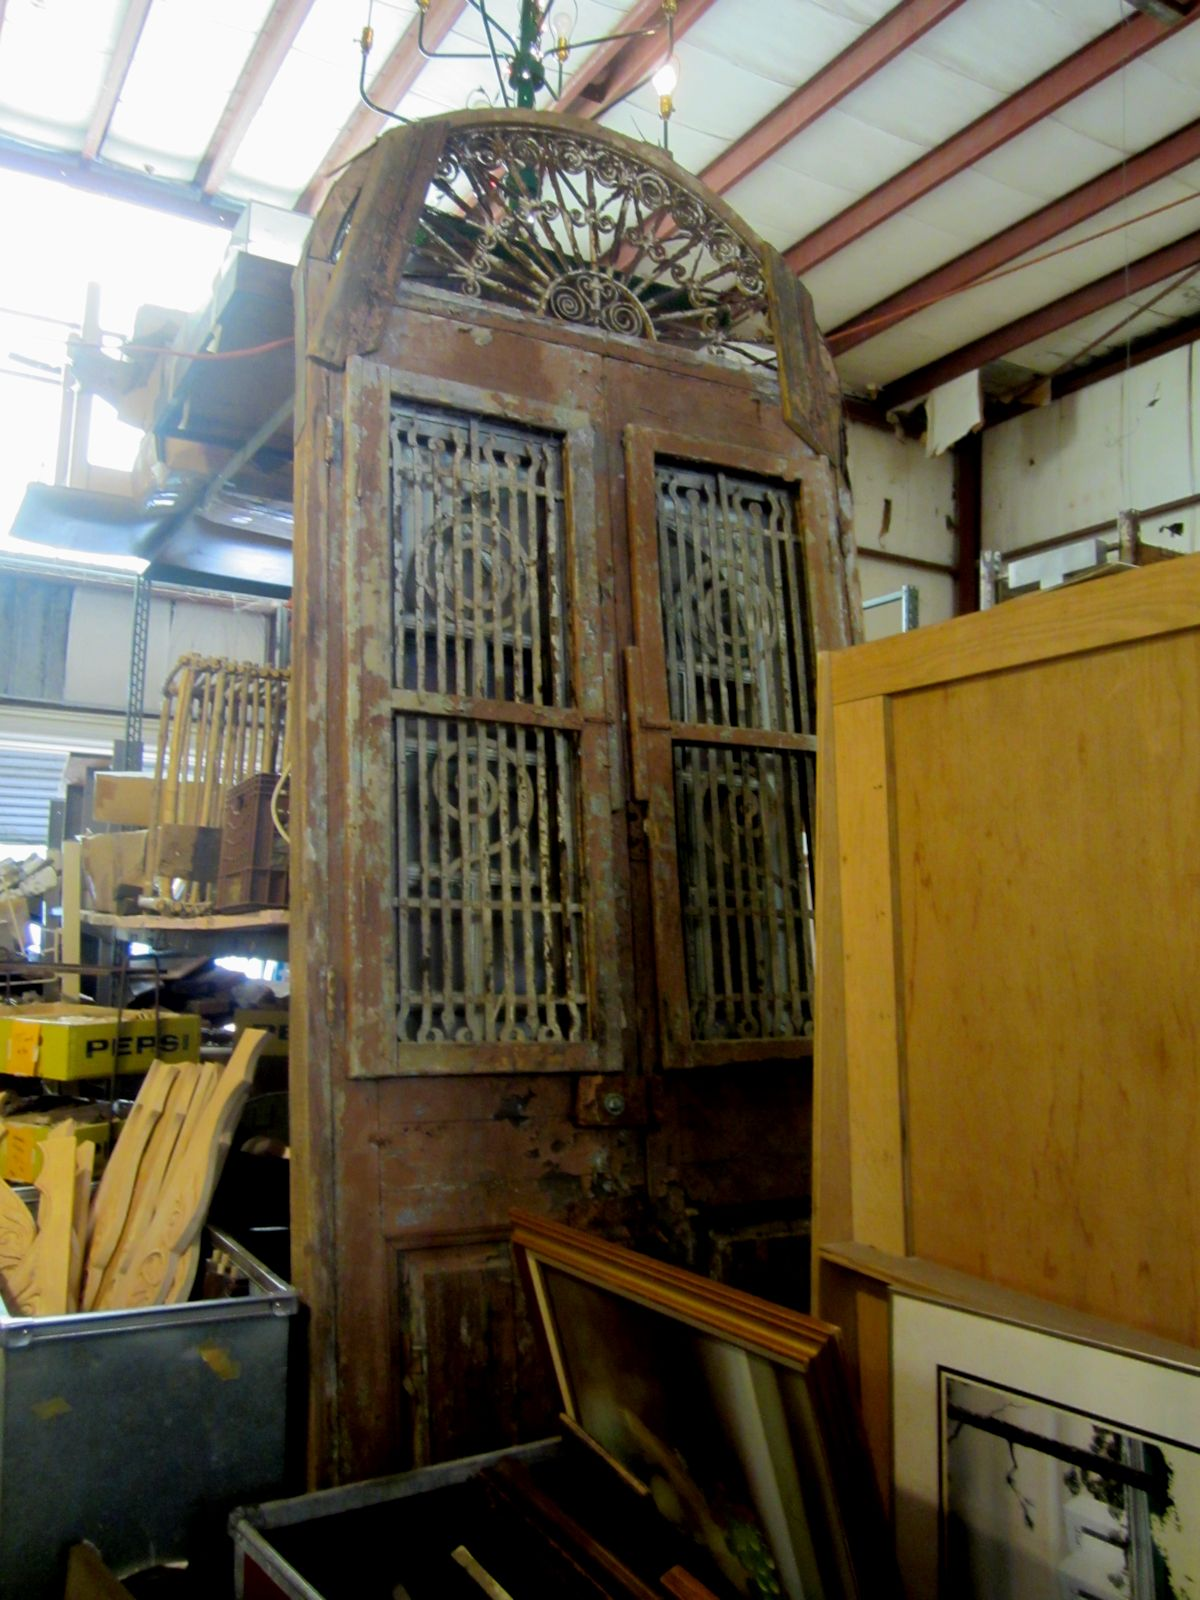 Best Kitchen Gallery: I Dig Hardware » Architectural Salvage of Architectural Salvage  on rachelxblog.com